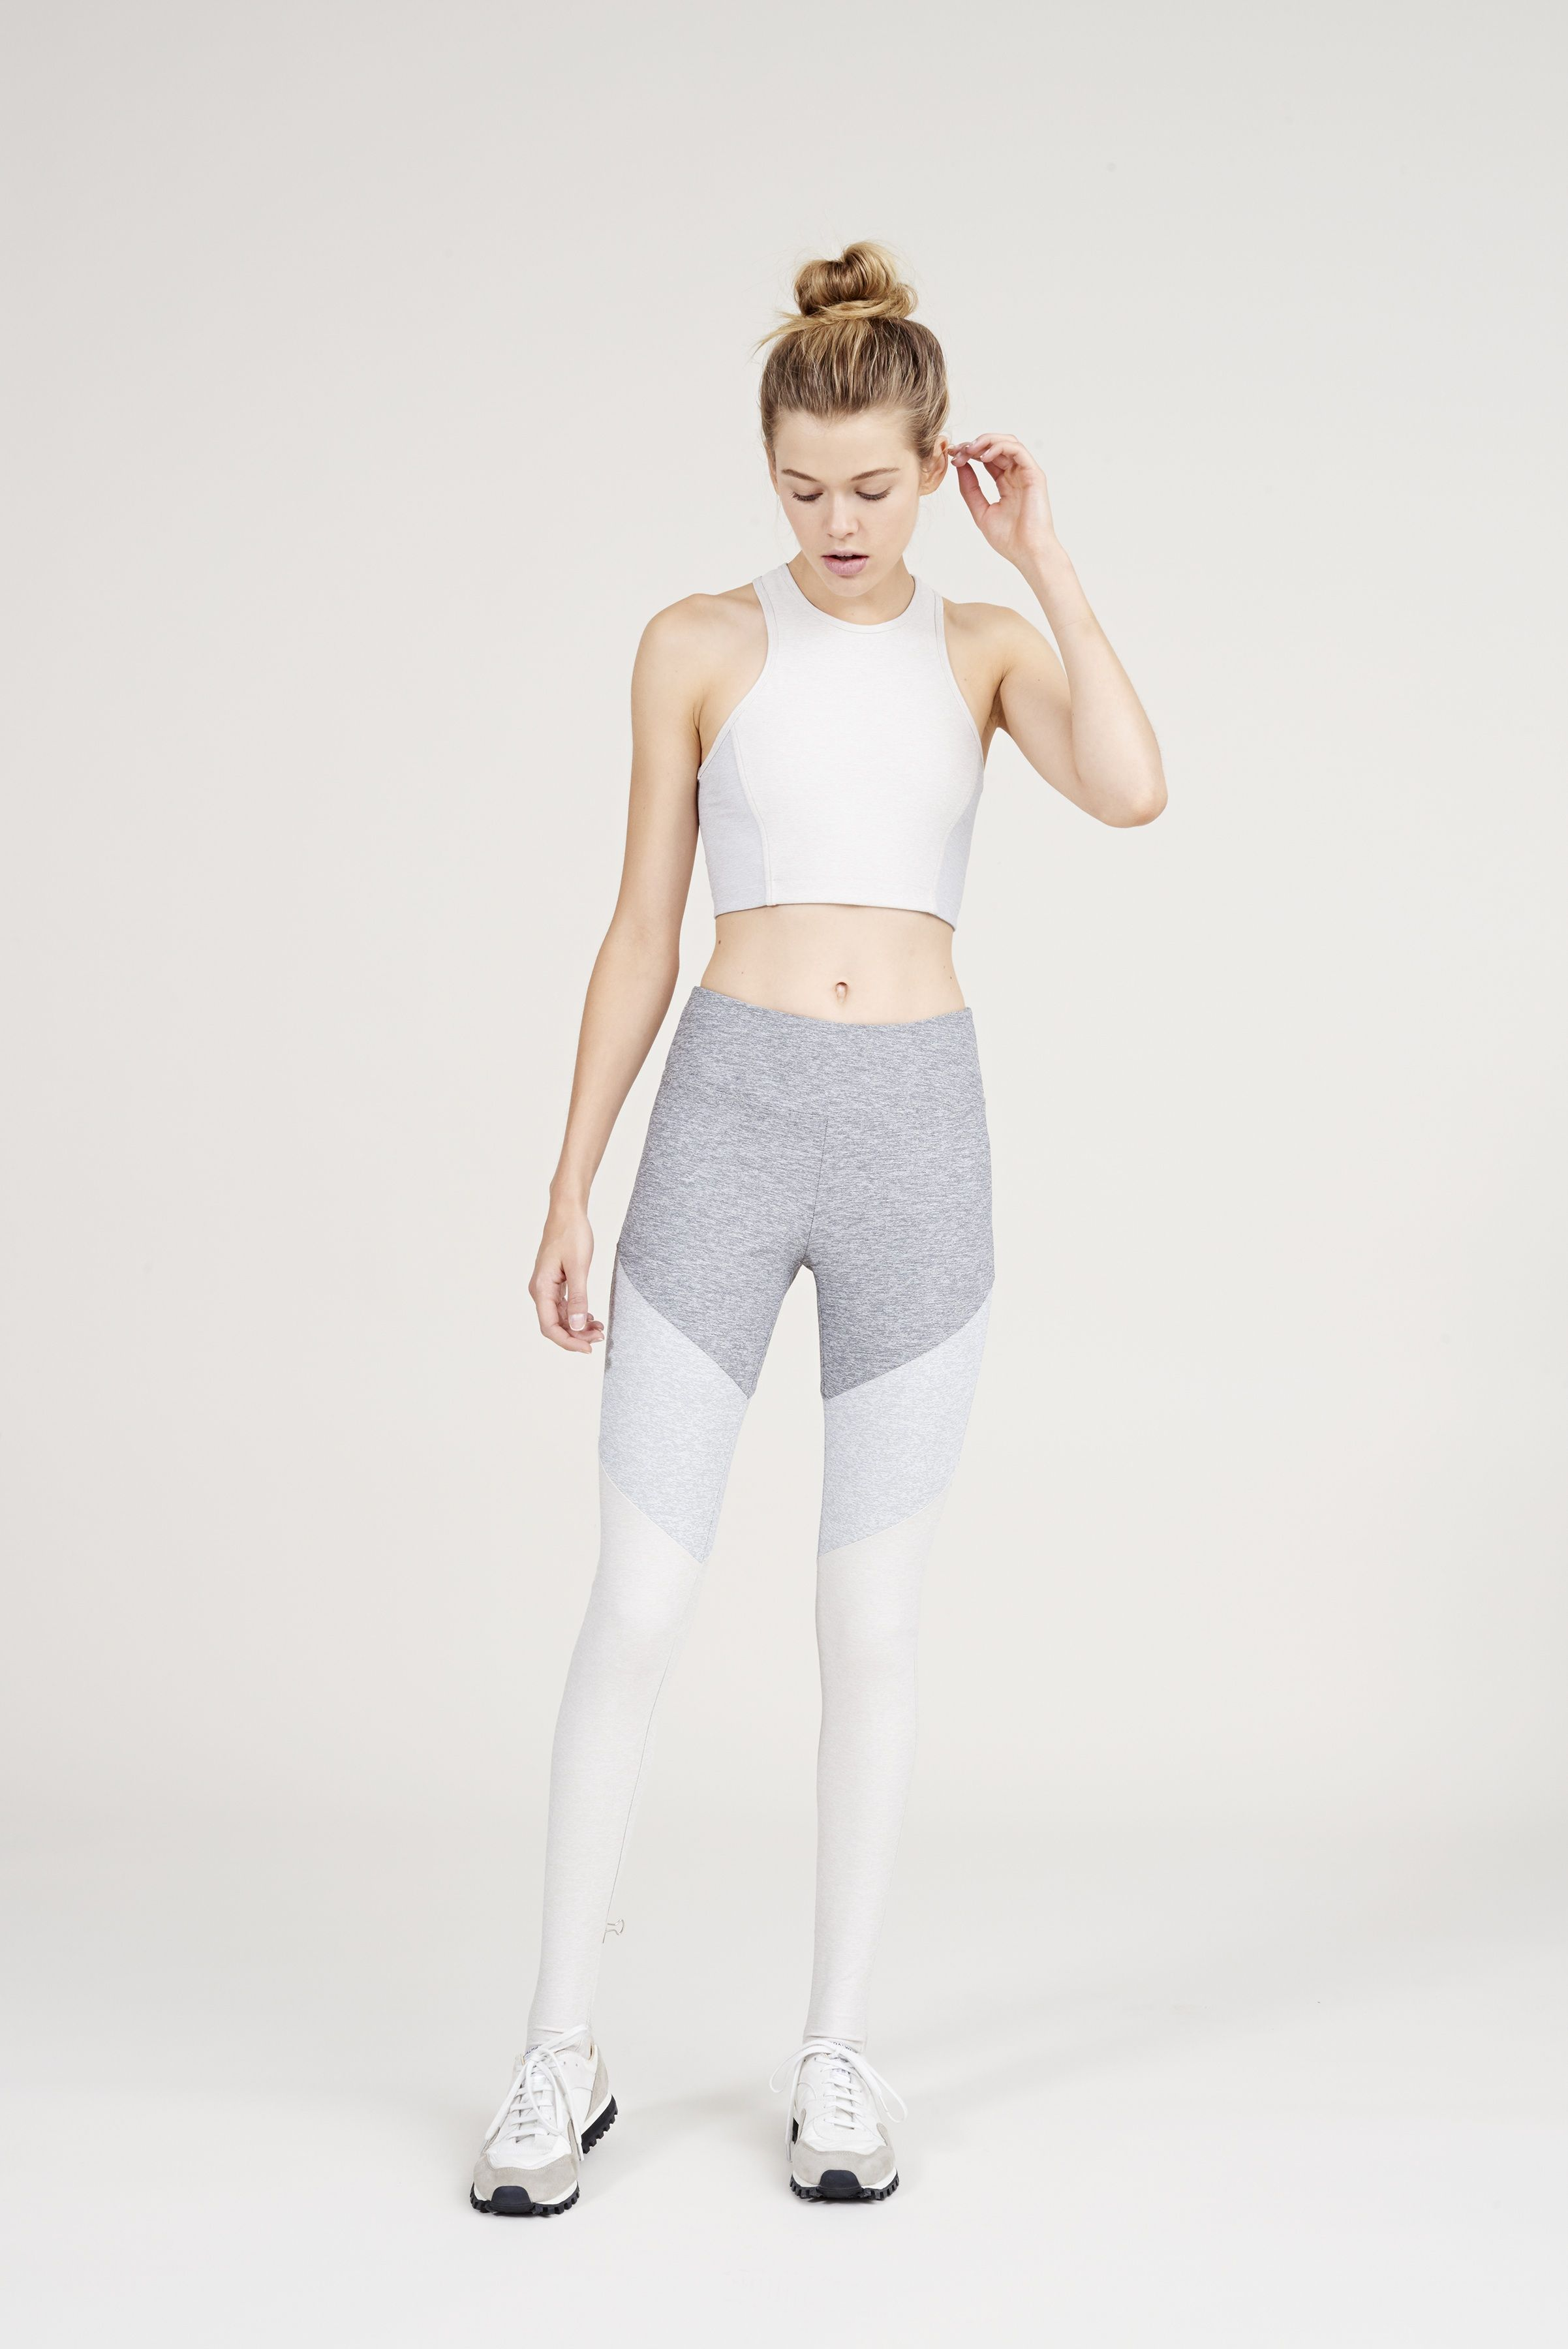 2a644cc7280ec The Color Blocked Dancer Leggings in Ash, Dove & Oatmeal from Outdoor Voices.  Activewear. Click on the link above and shop now.